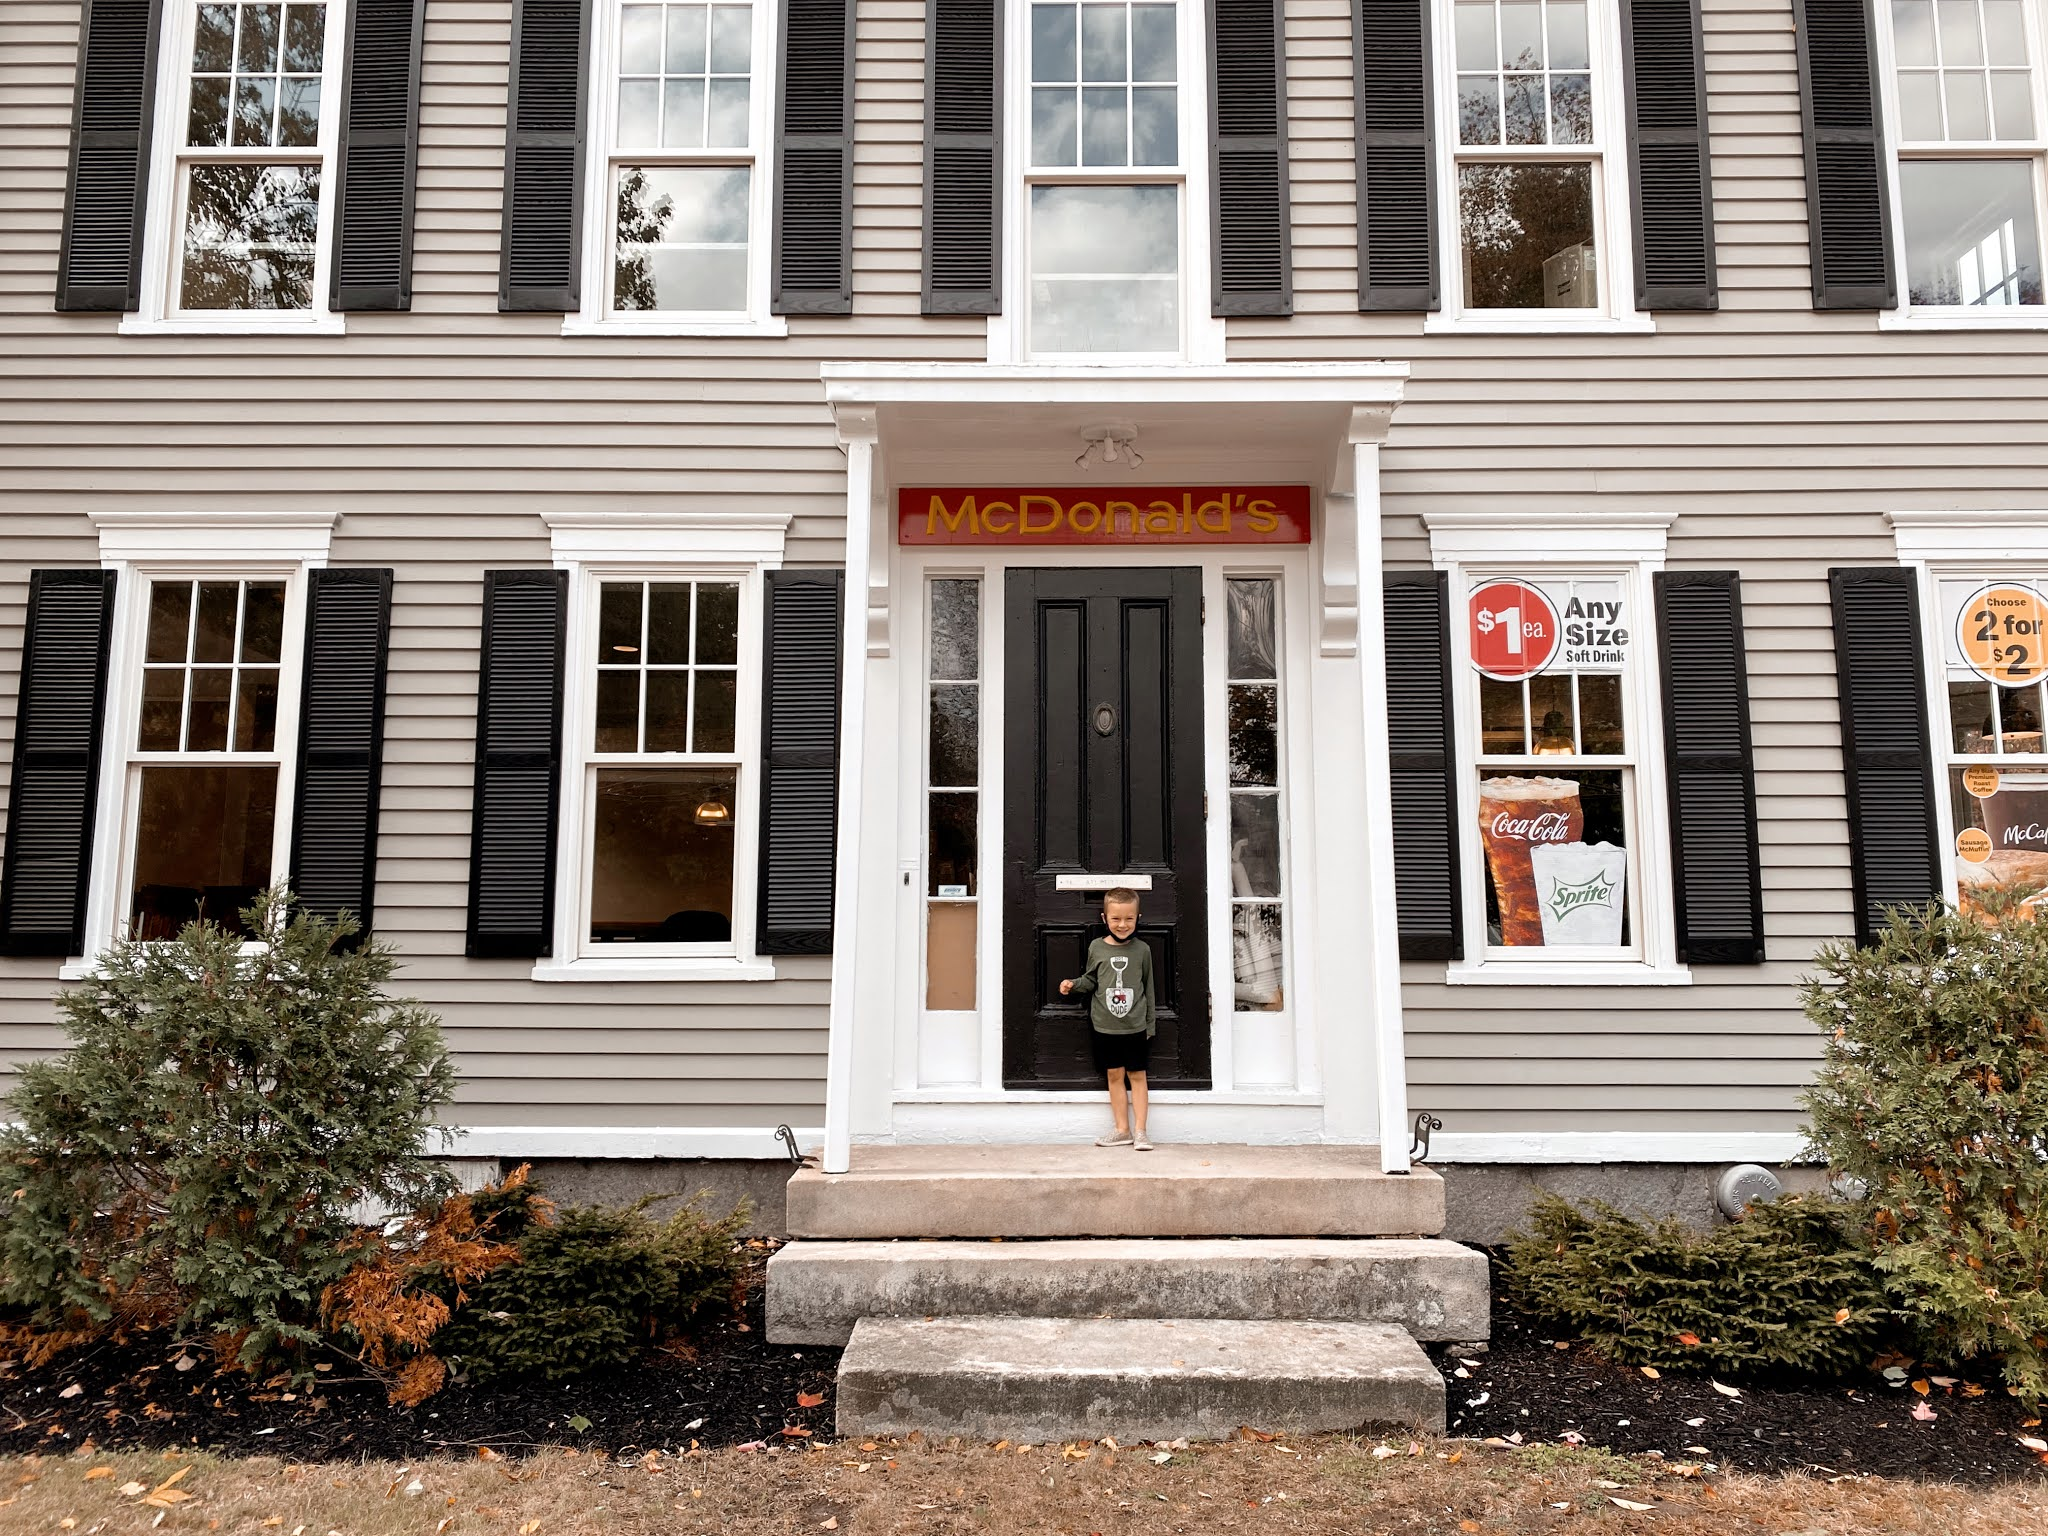 Freeport, Maine McDonalds in an 150-Year Old Mansion | biblio-style.com